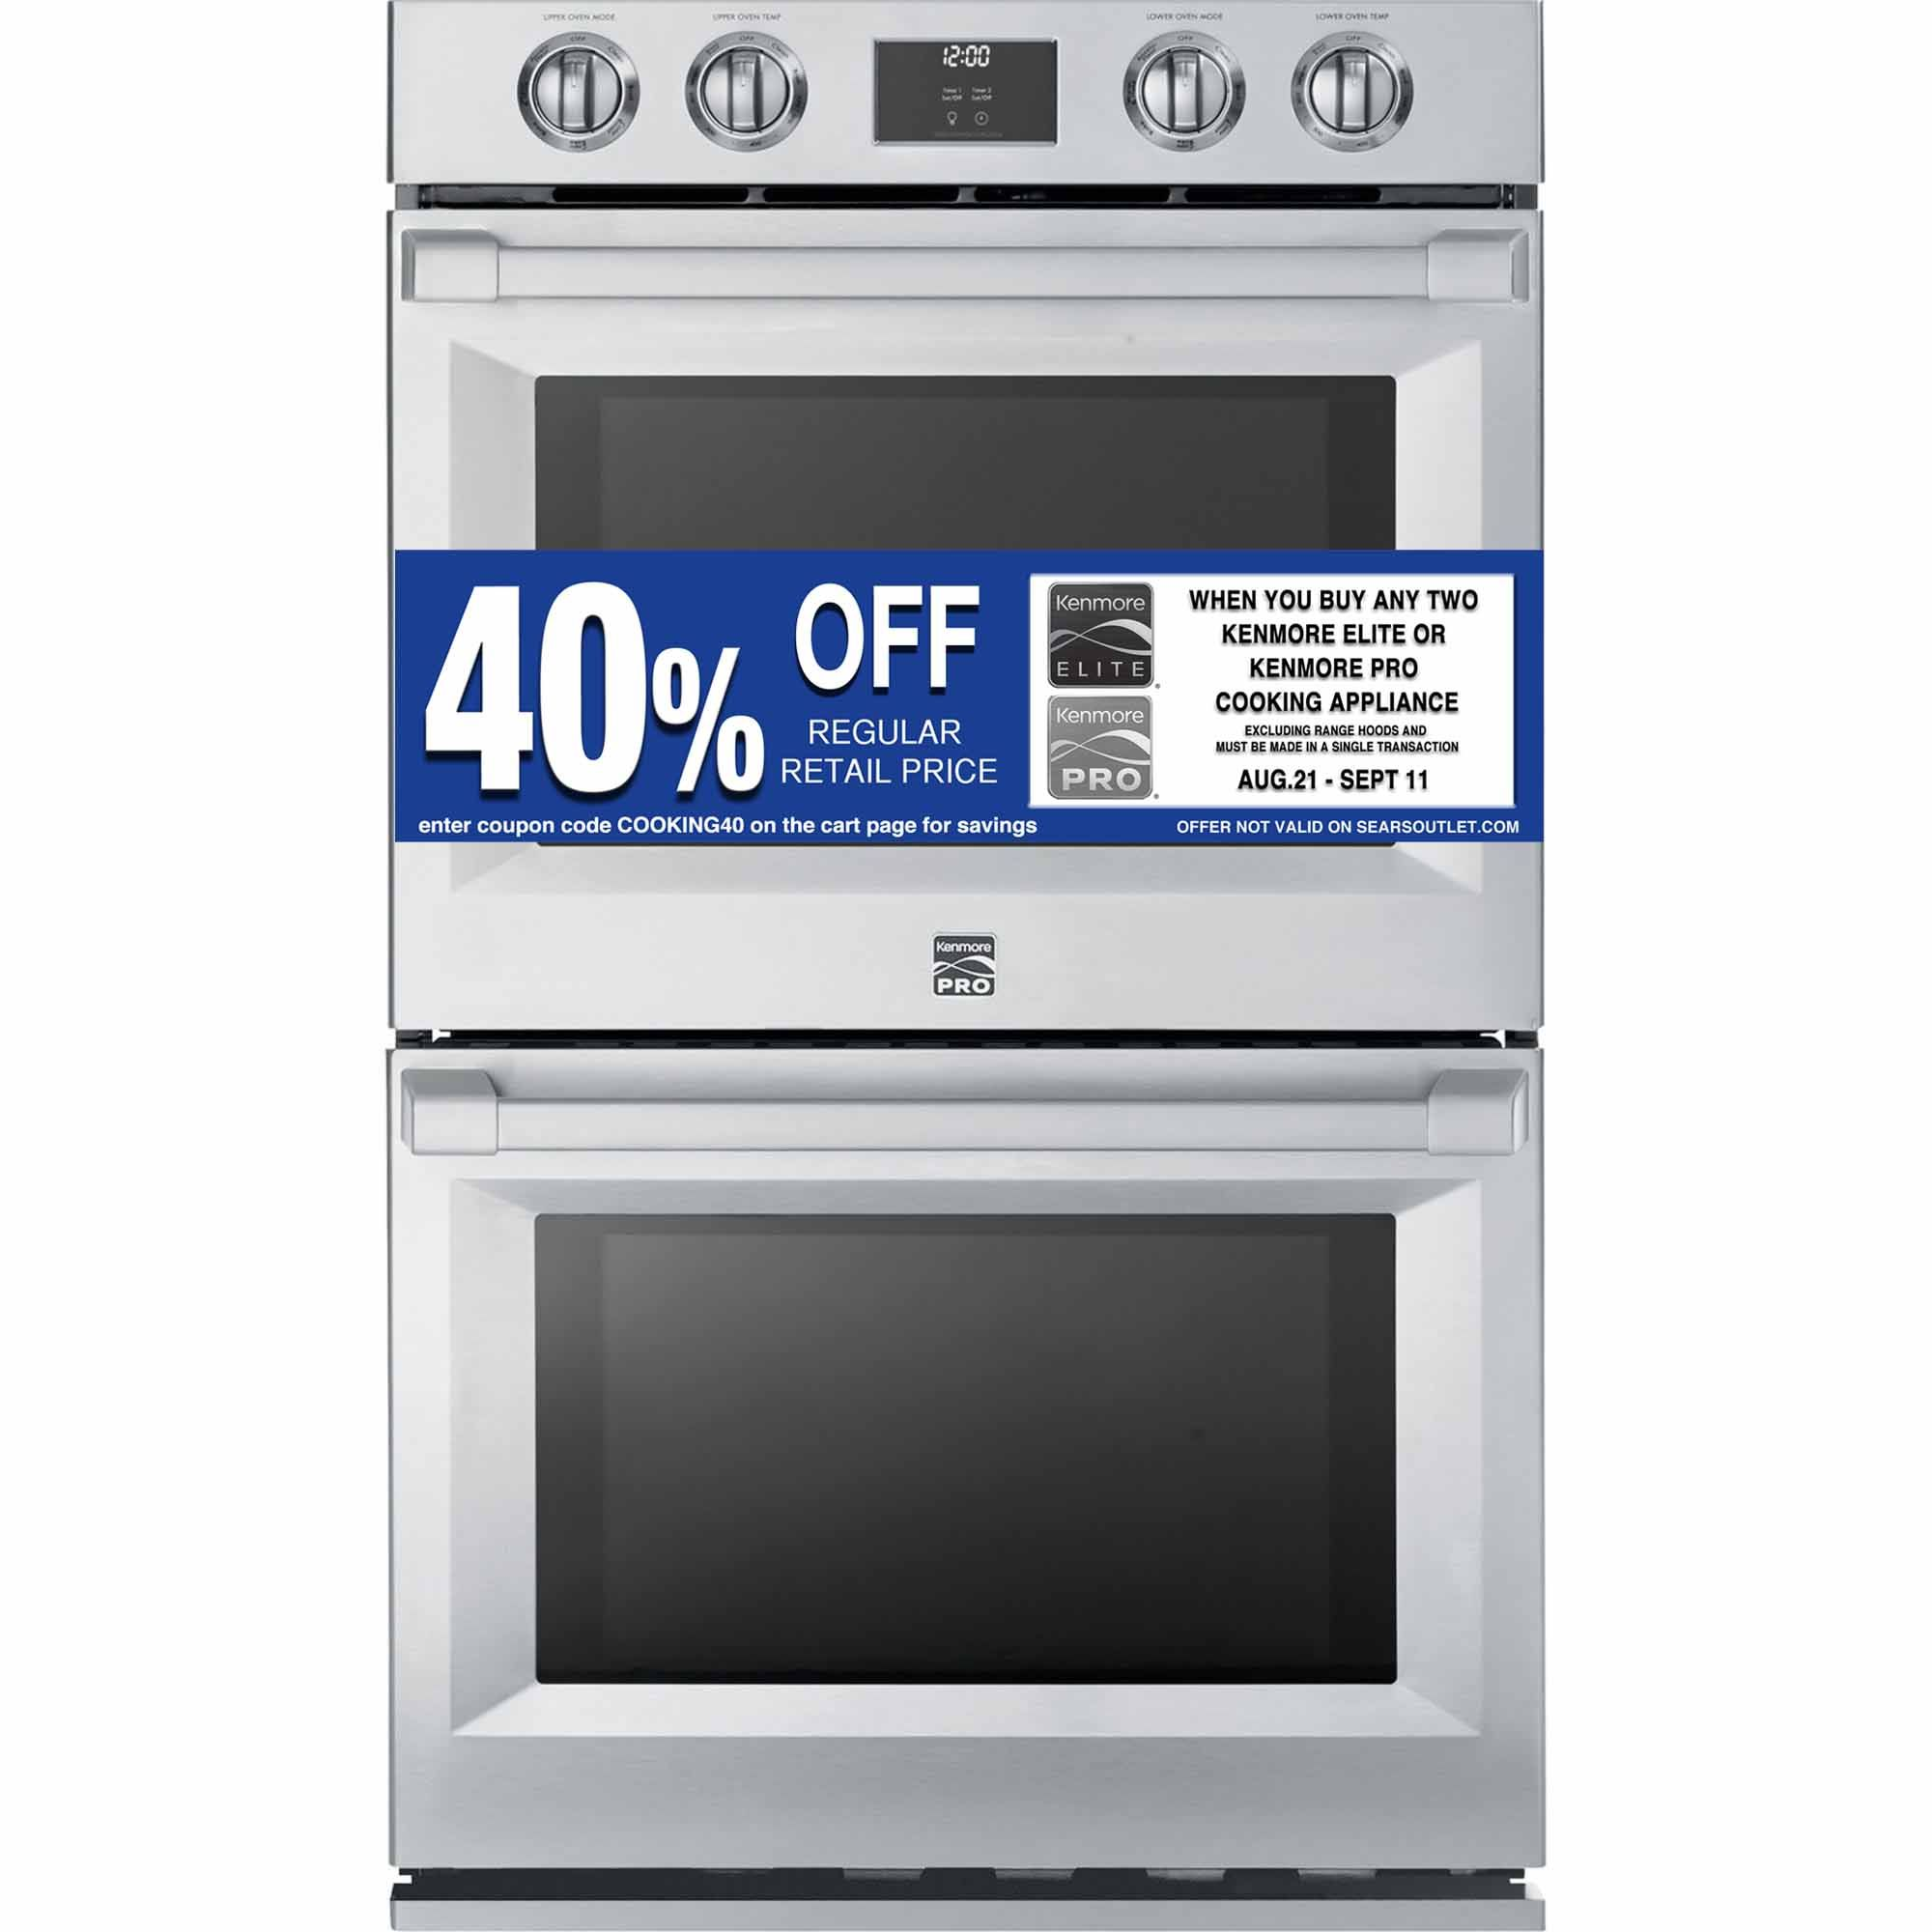 Was On Sale For $1999.99 At Sears Kenmore Pro 41142 30